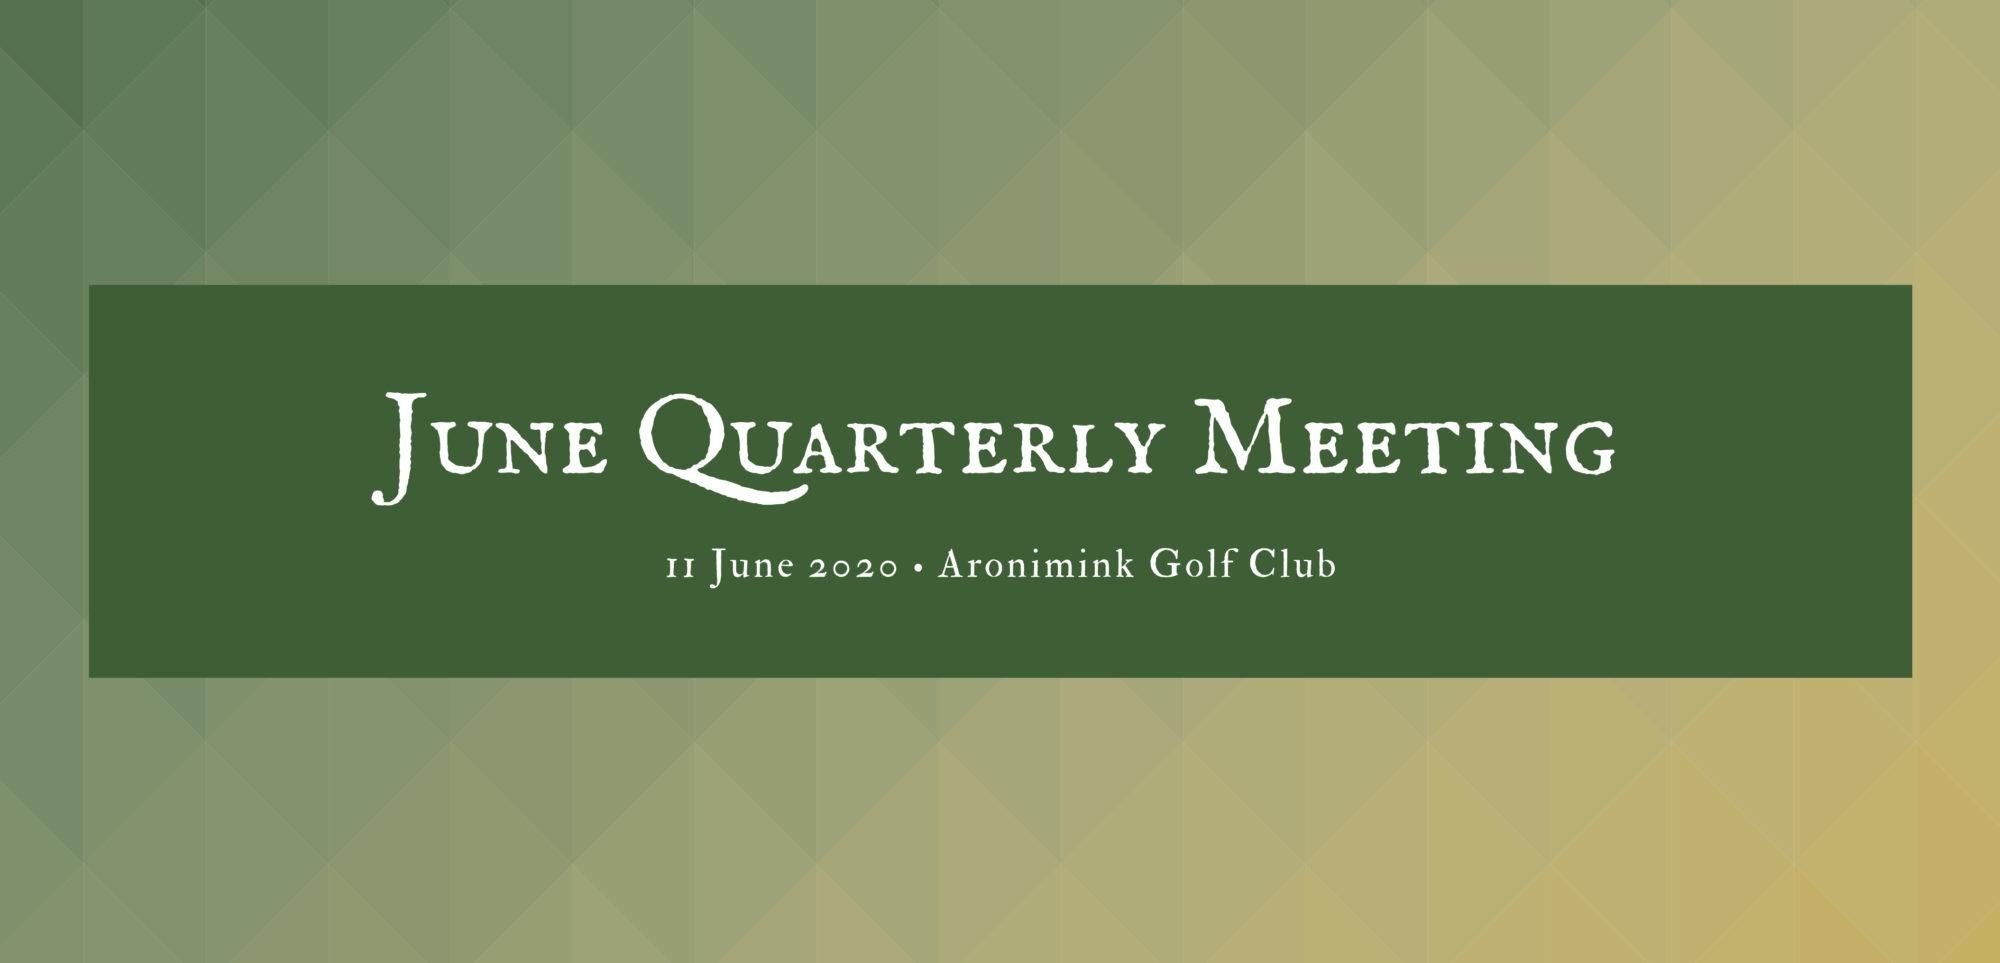 BBQ Summer Social & June Quarterly Meeting